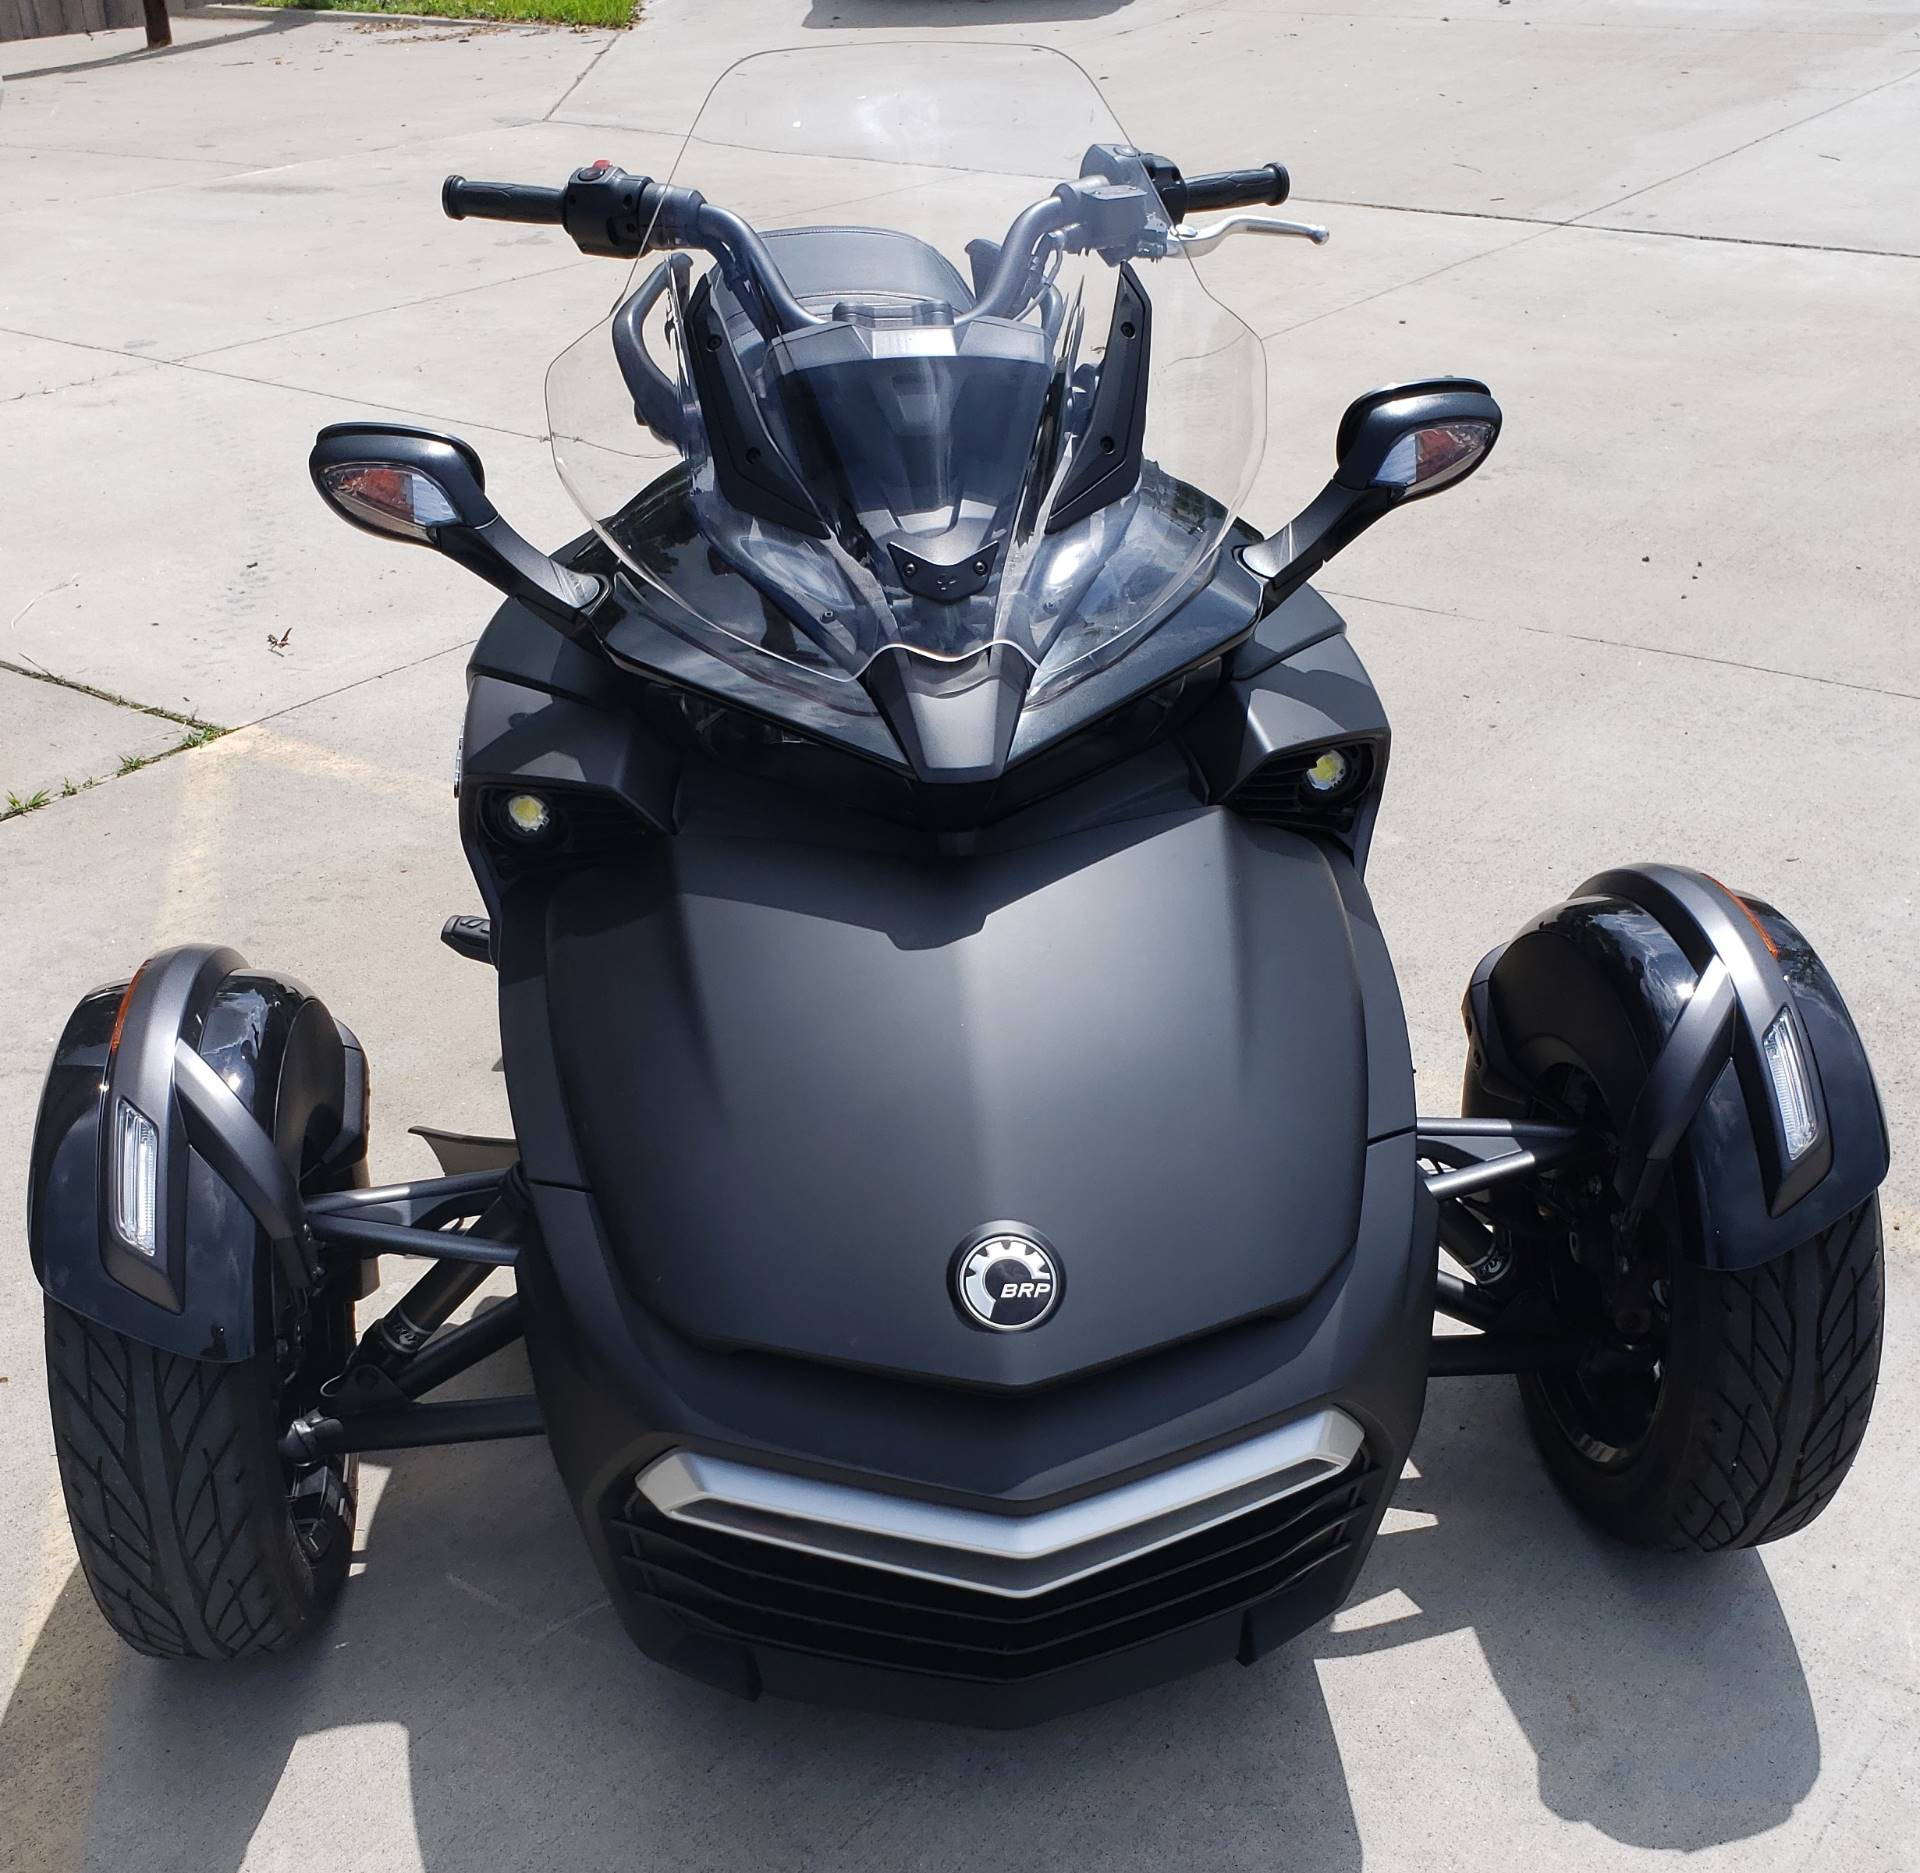 2015 Can-Am Spyder® F3-S SM6 in Joplin, Missouri - Photo 1